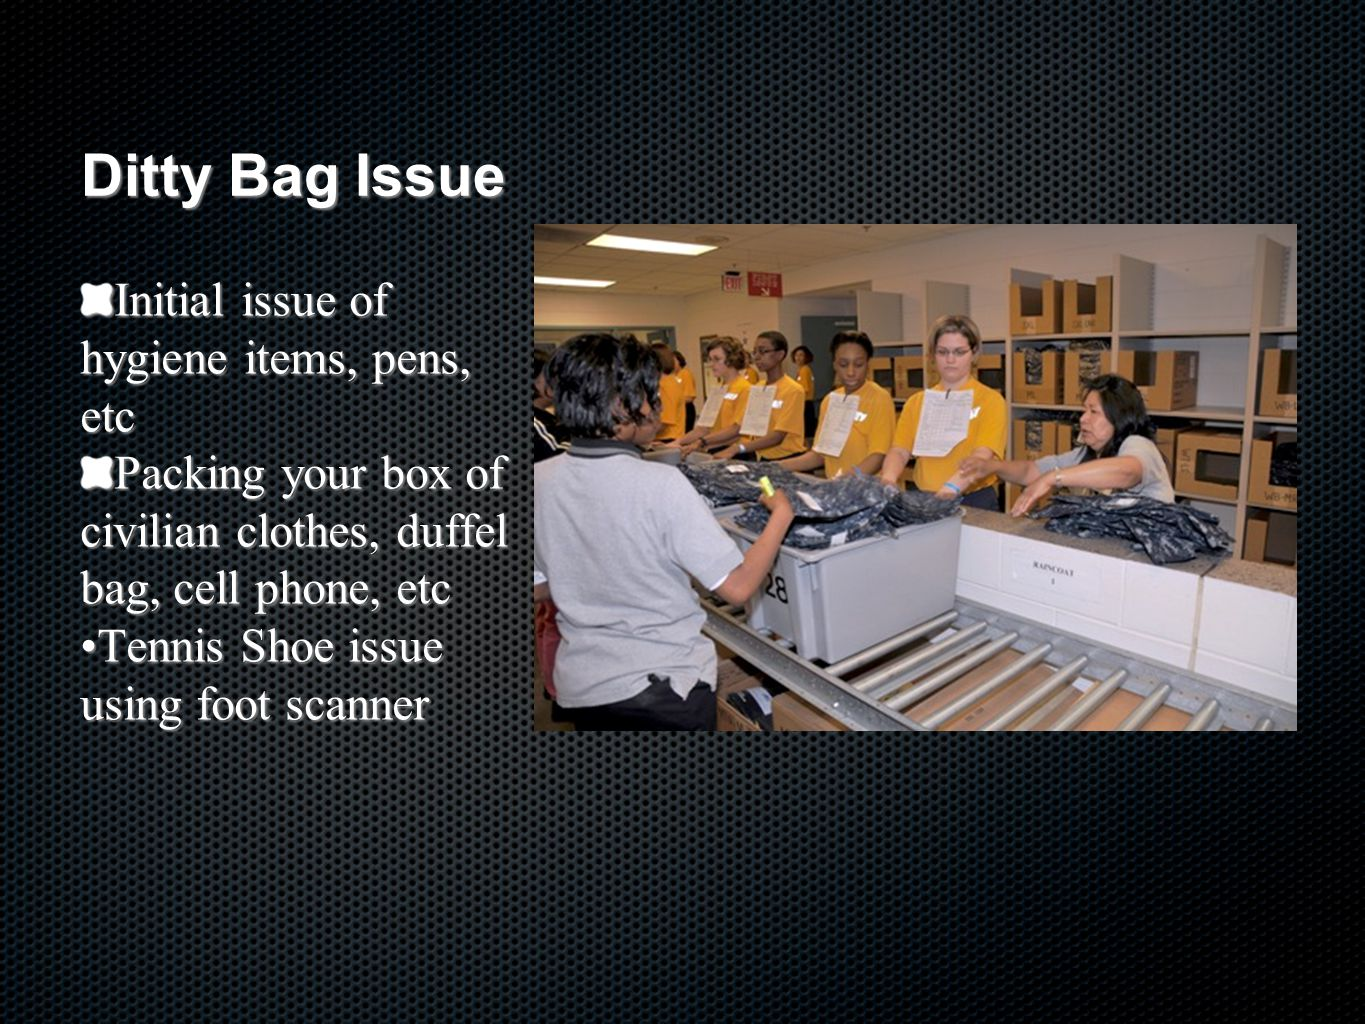 Ditty Bag Issue Initial issue of hygiene items, pens, etc Packing your box of civilian clothes, duffel bag, cell phone, etc Tennis Shoe issue using foot scannerTennis Shoe issue using foot scanner